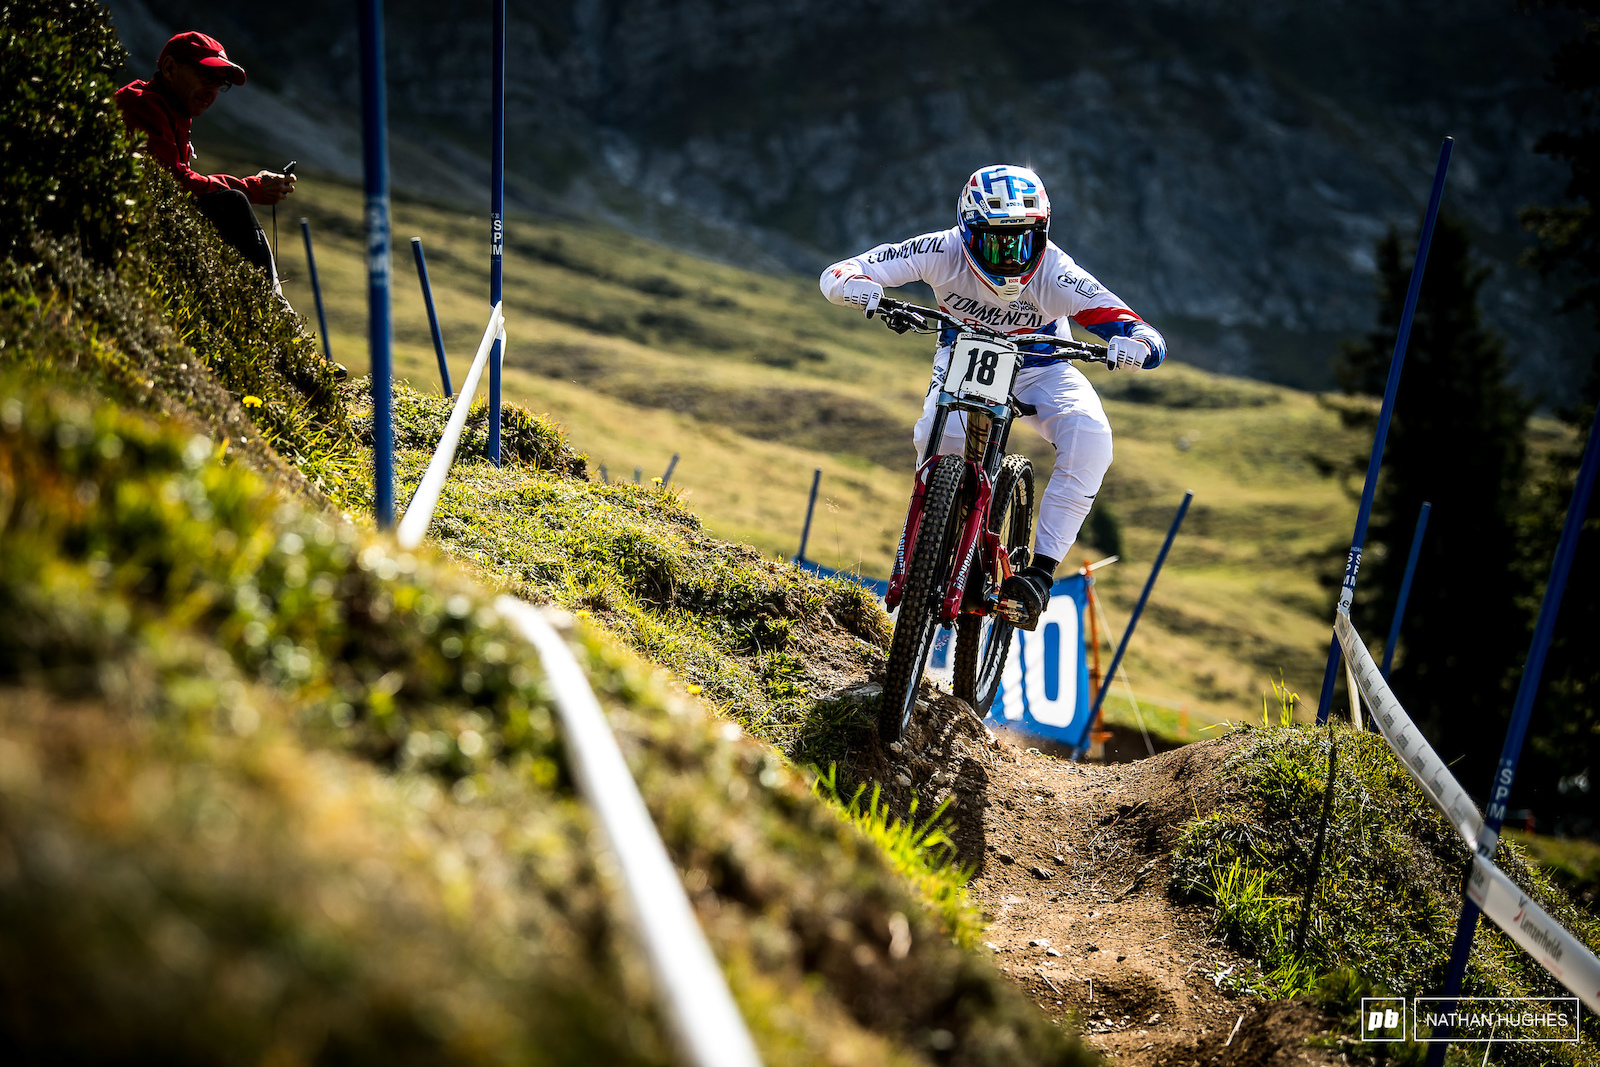 Remi Thirion s top result in La Bresse should have his confidence levels back up and ready to charge for the medals at the weekend.